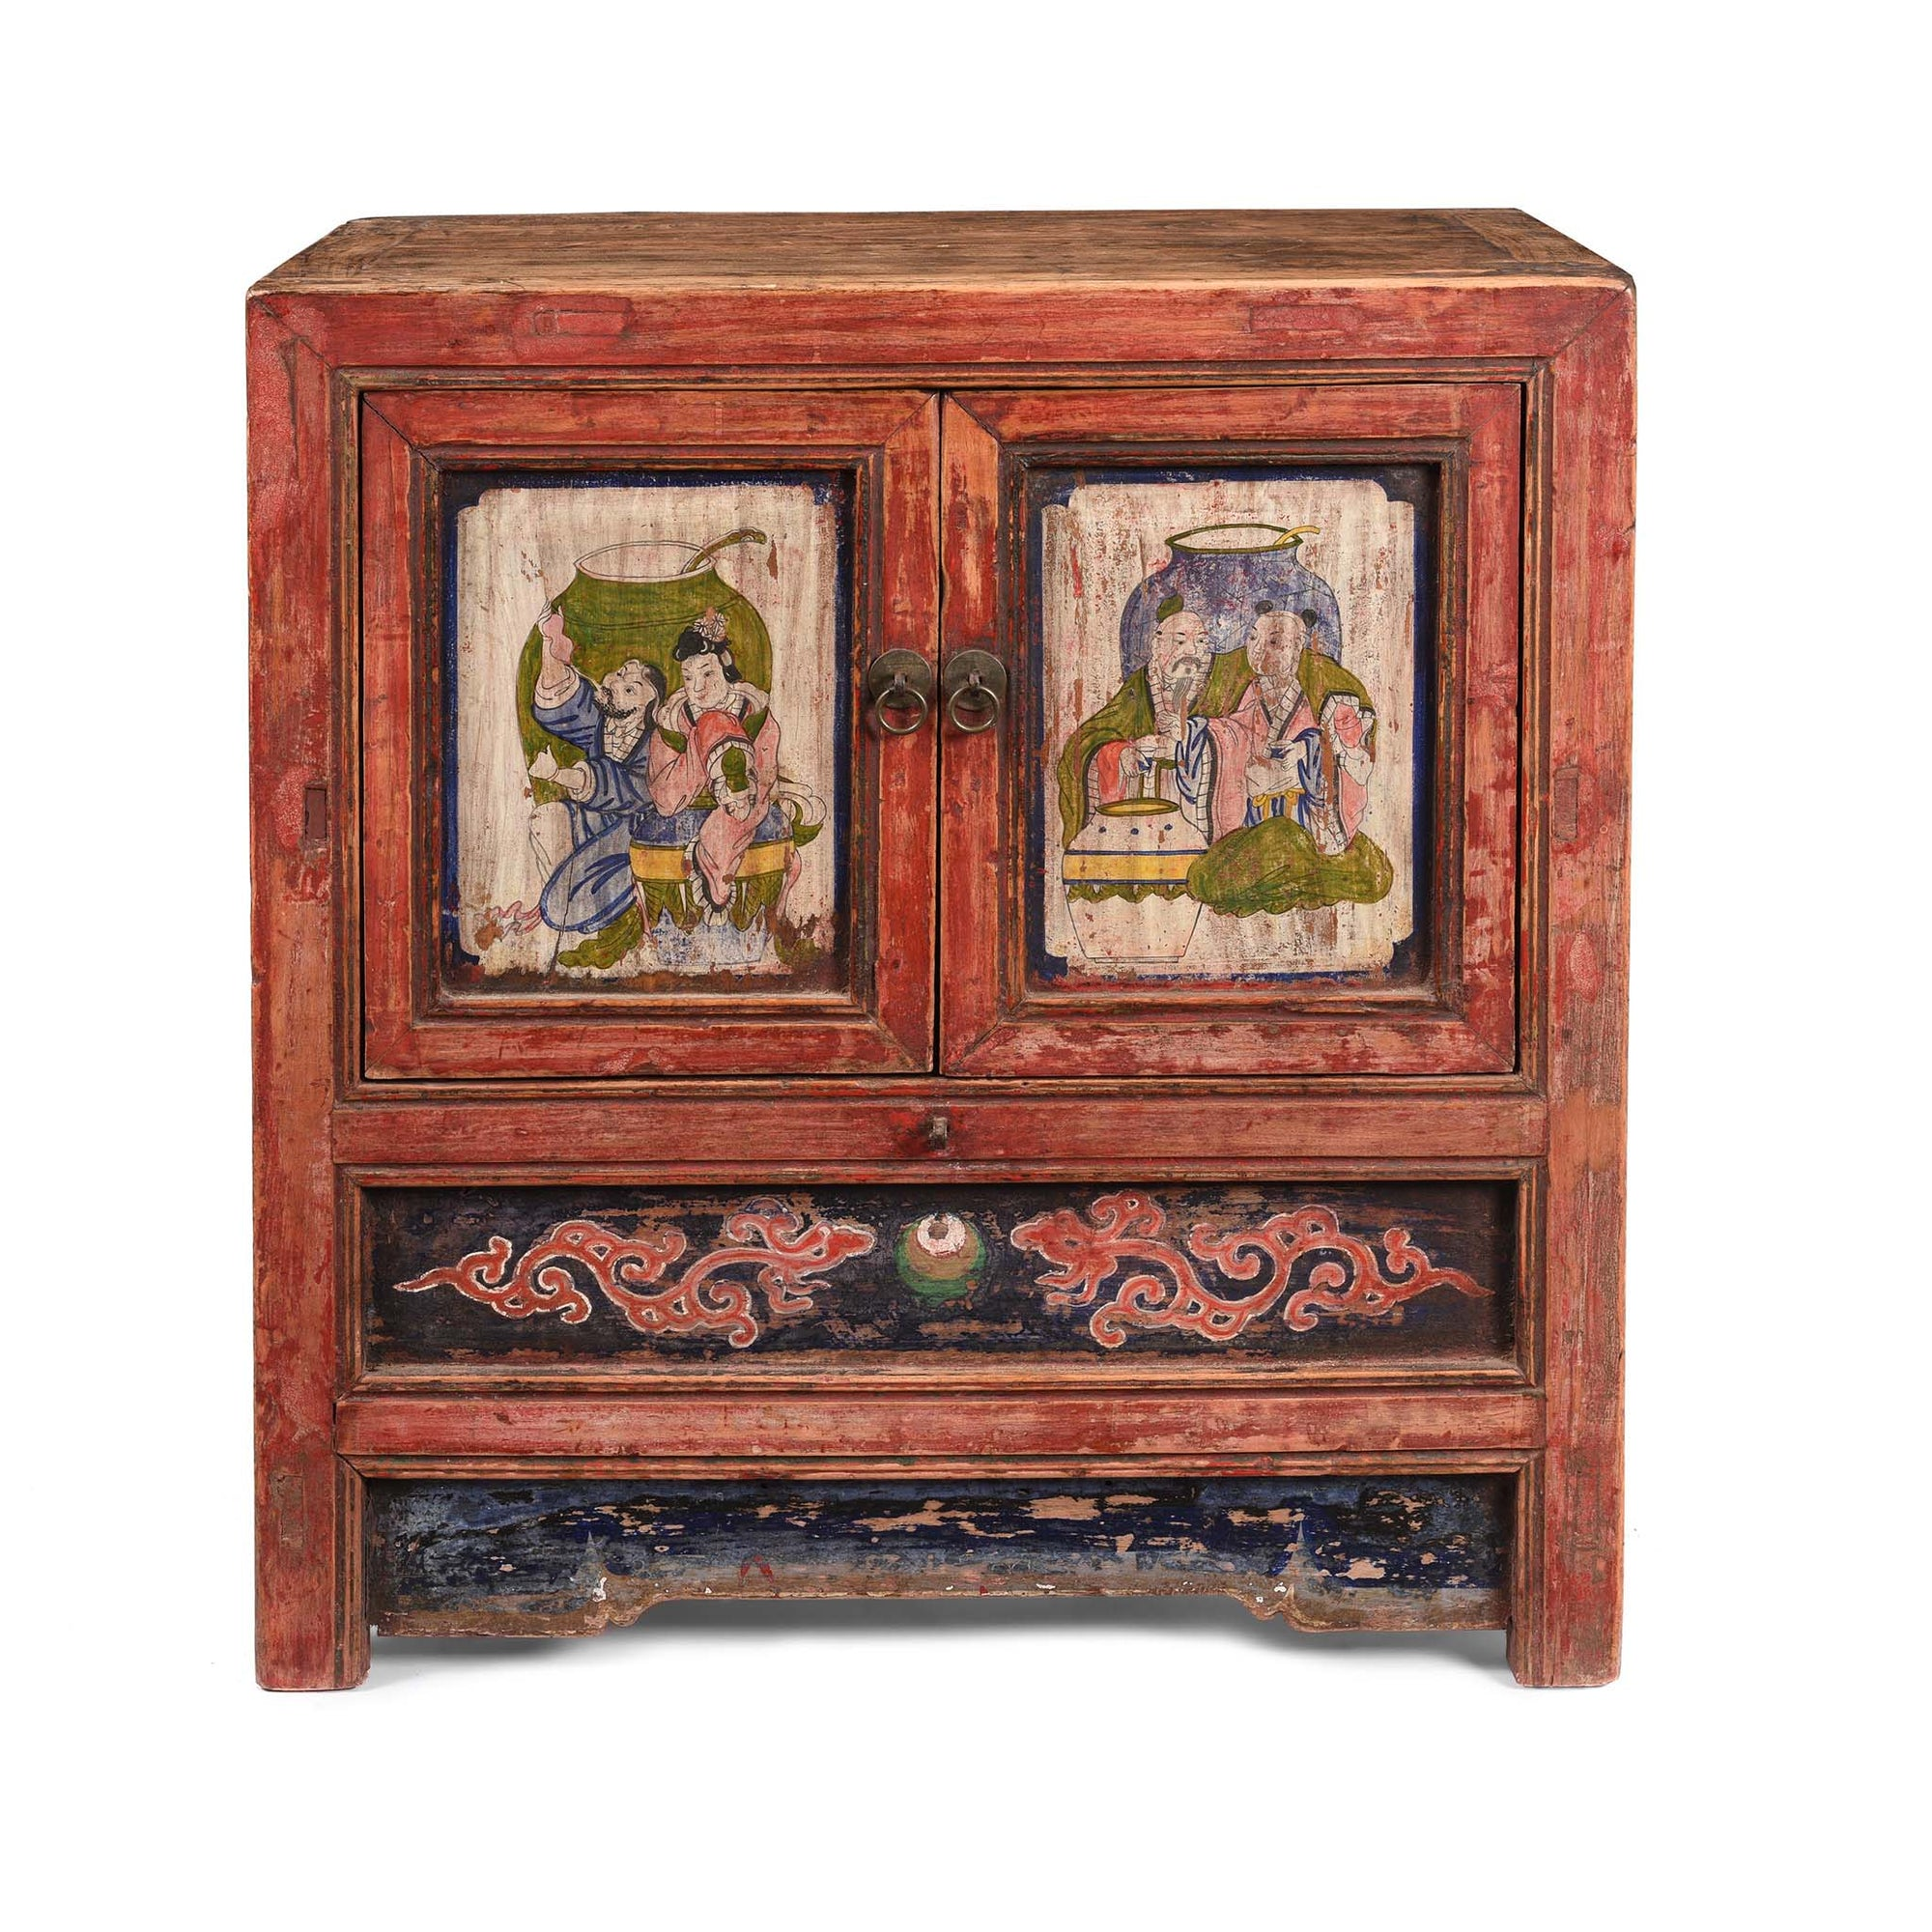 Painted Mongolian Side Cabinet - 19thC - 65 x 38 x 71 (wxdxh cms) - C1342V1